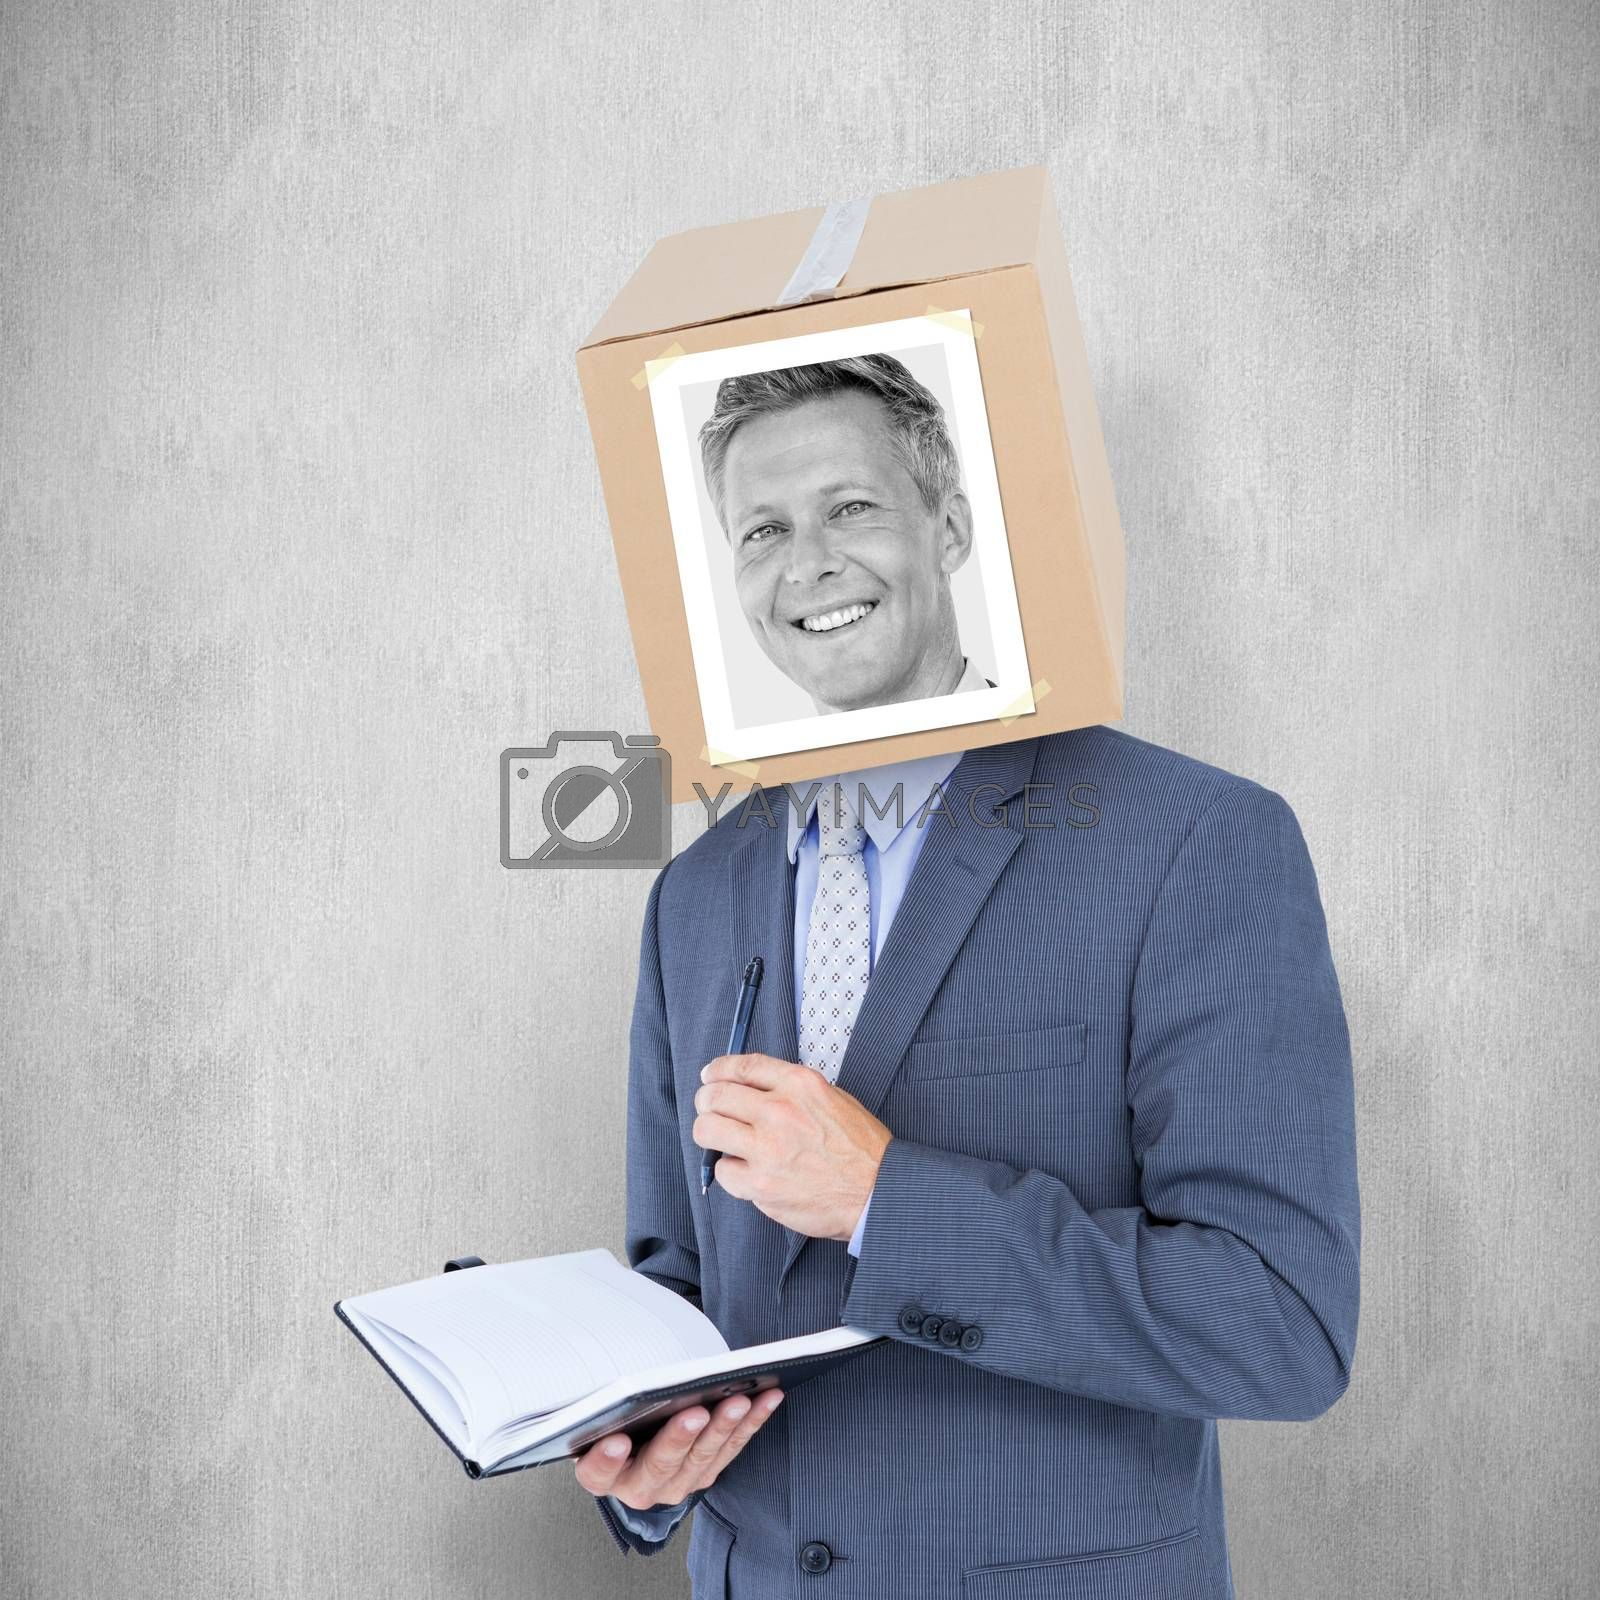 Businessman with photo box on head against white background